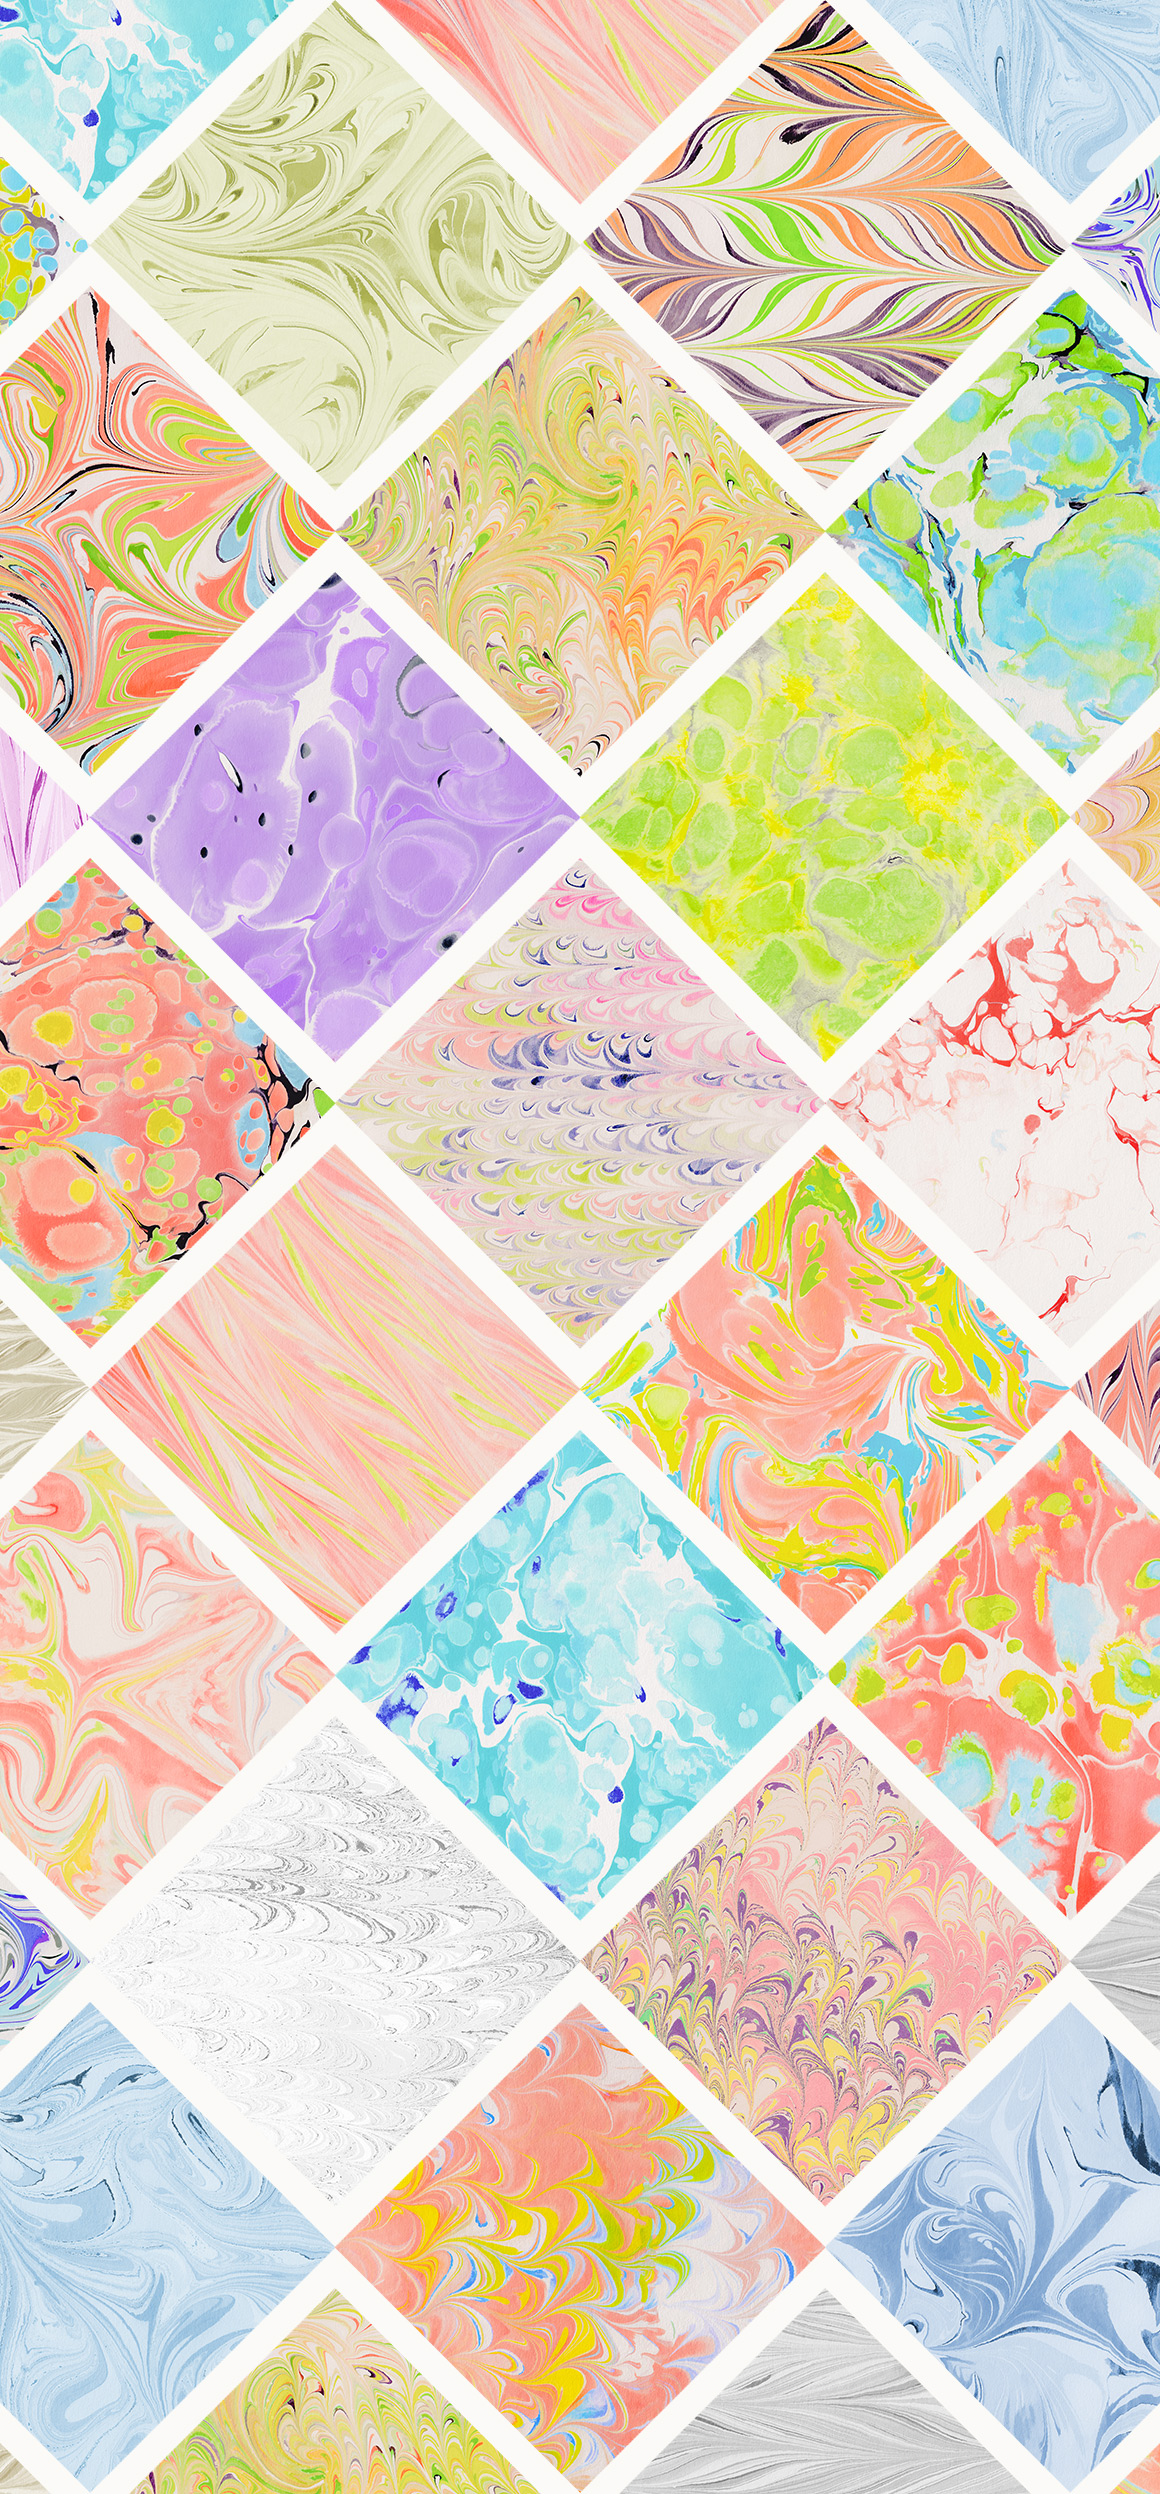 marbling-paper-textures-26-45